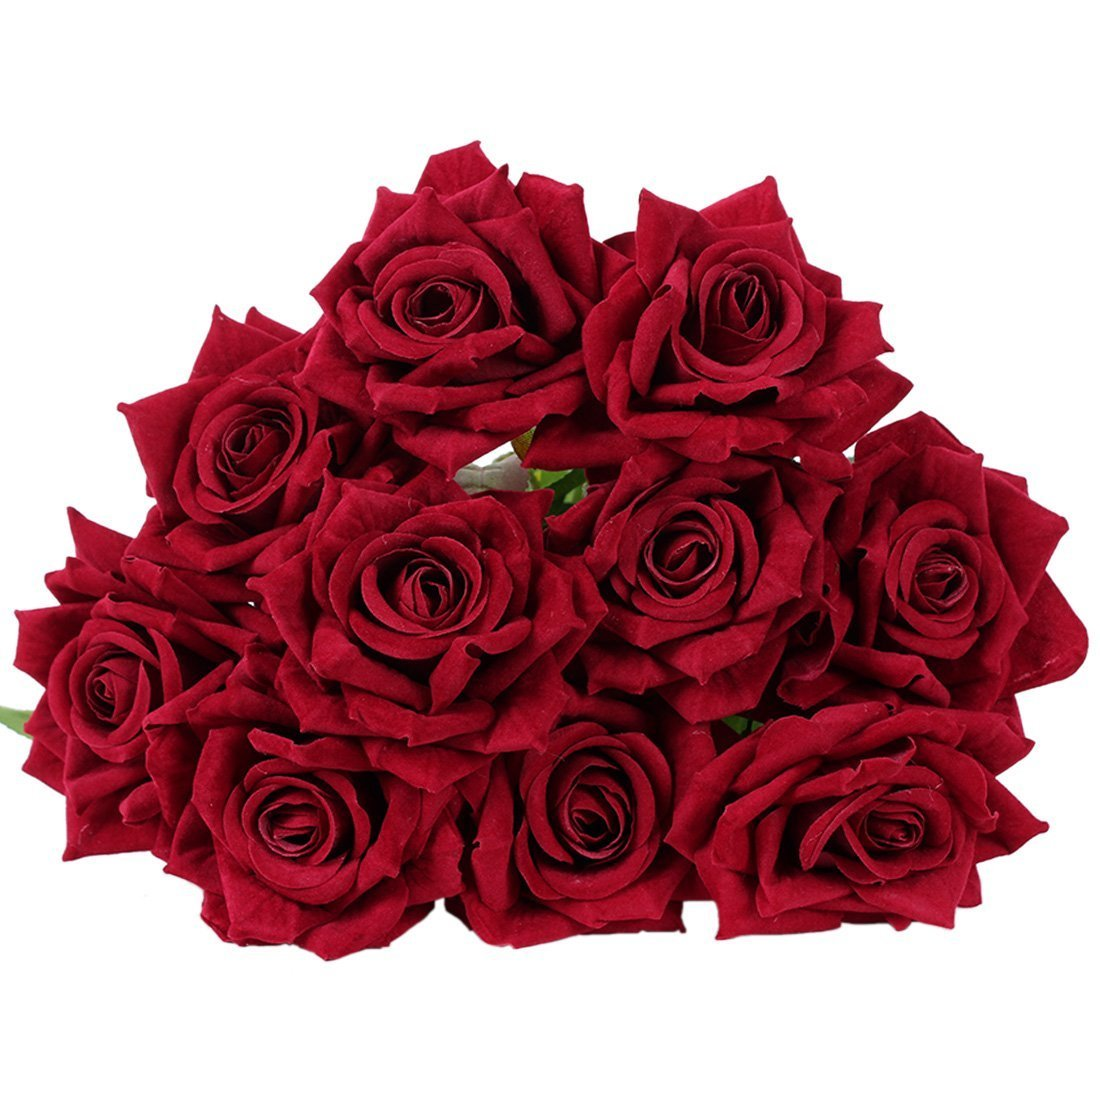 Amazon.com: YSBER 10 Pcs Real Touch Silk Artificial Rose Flowers ...